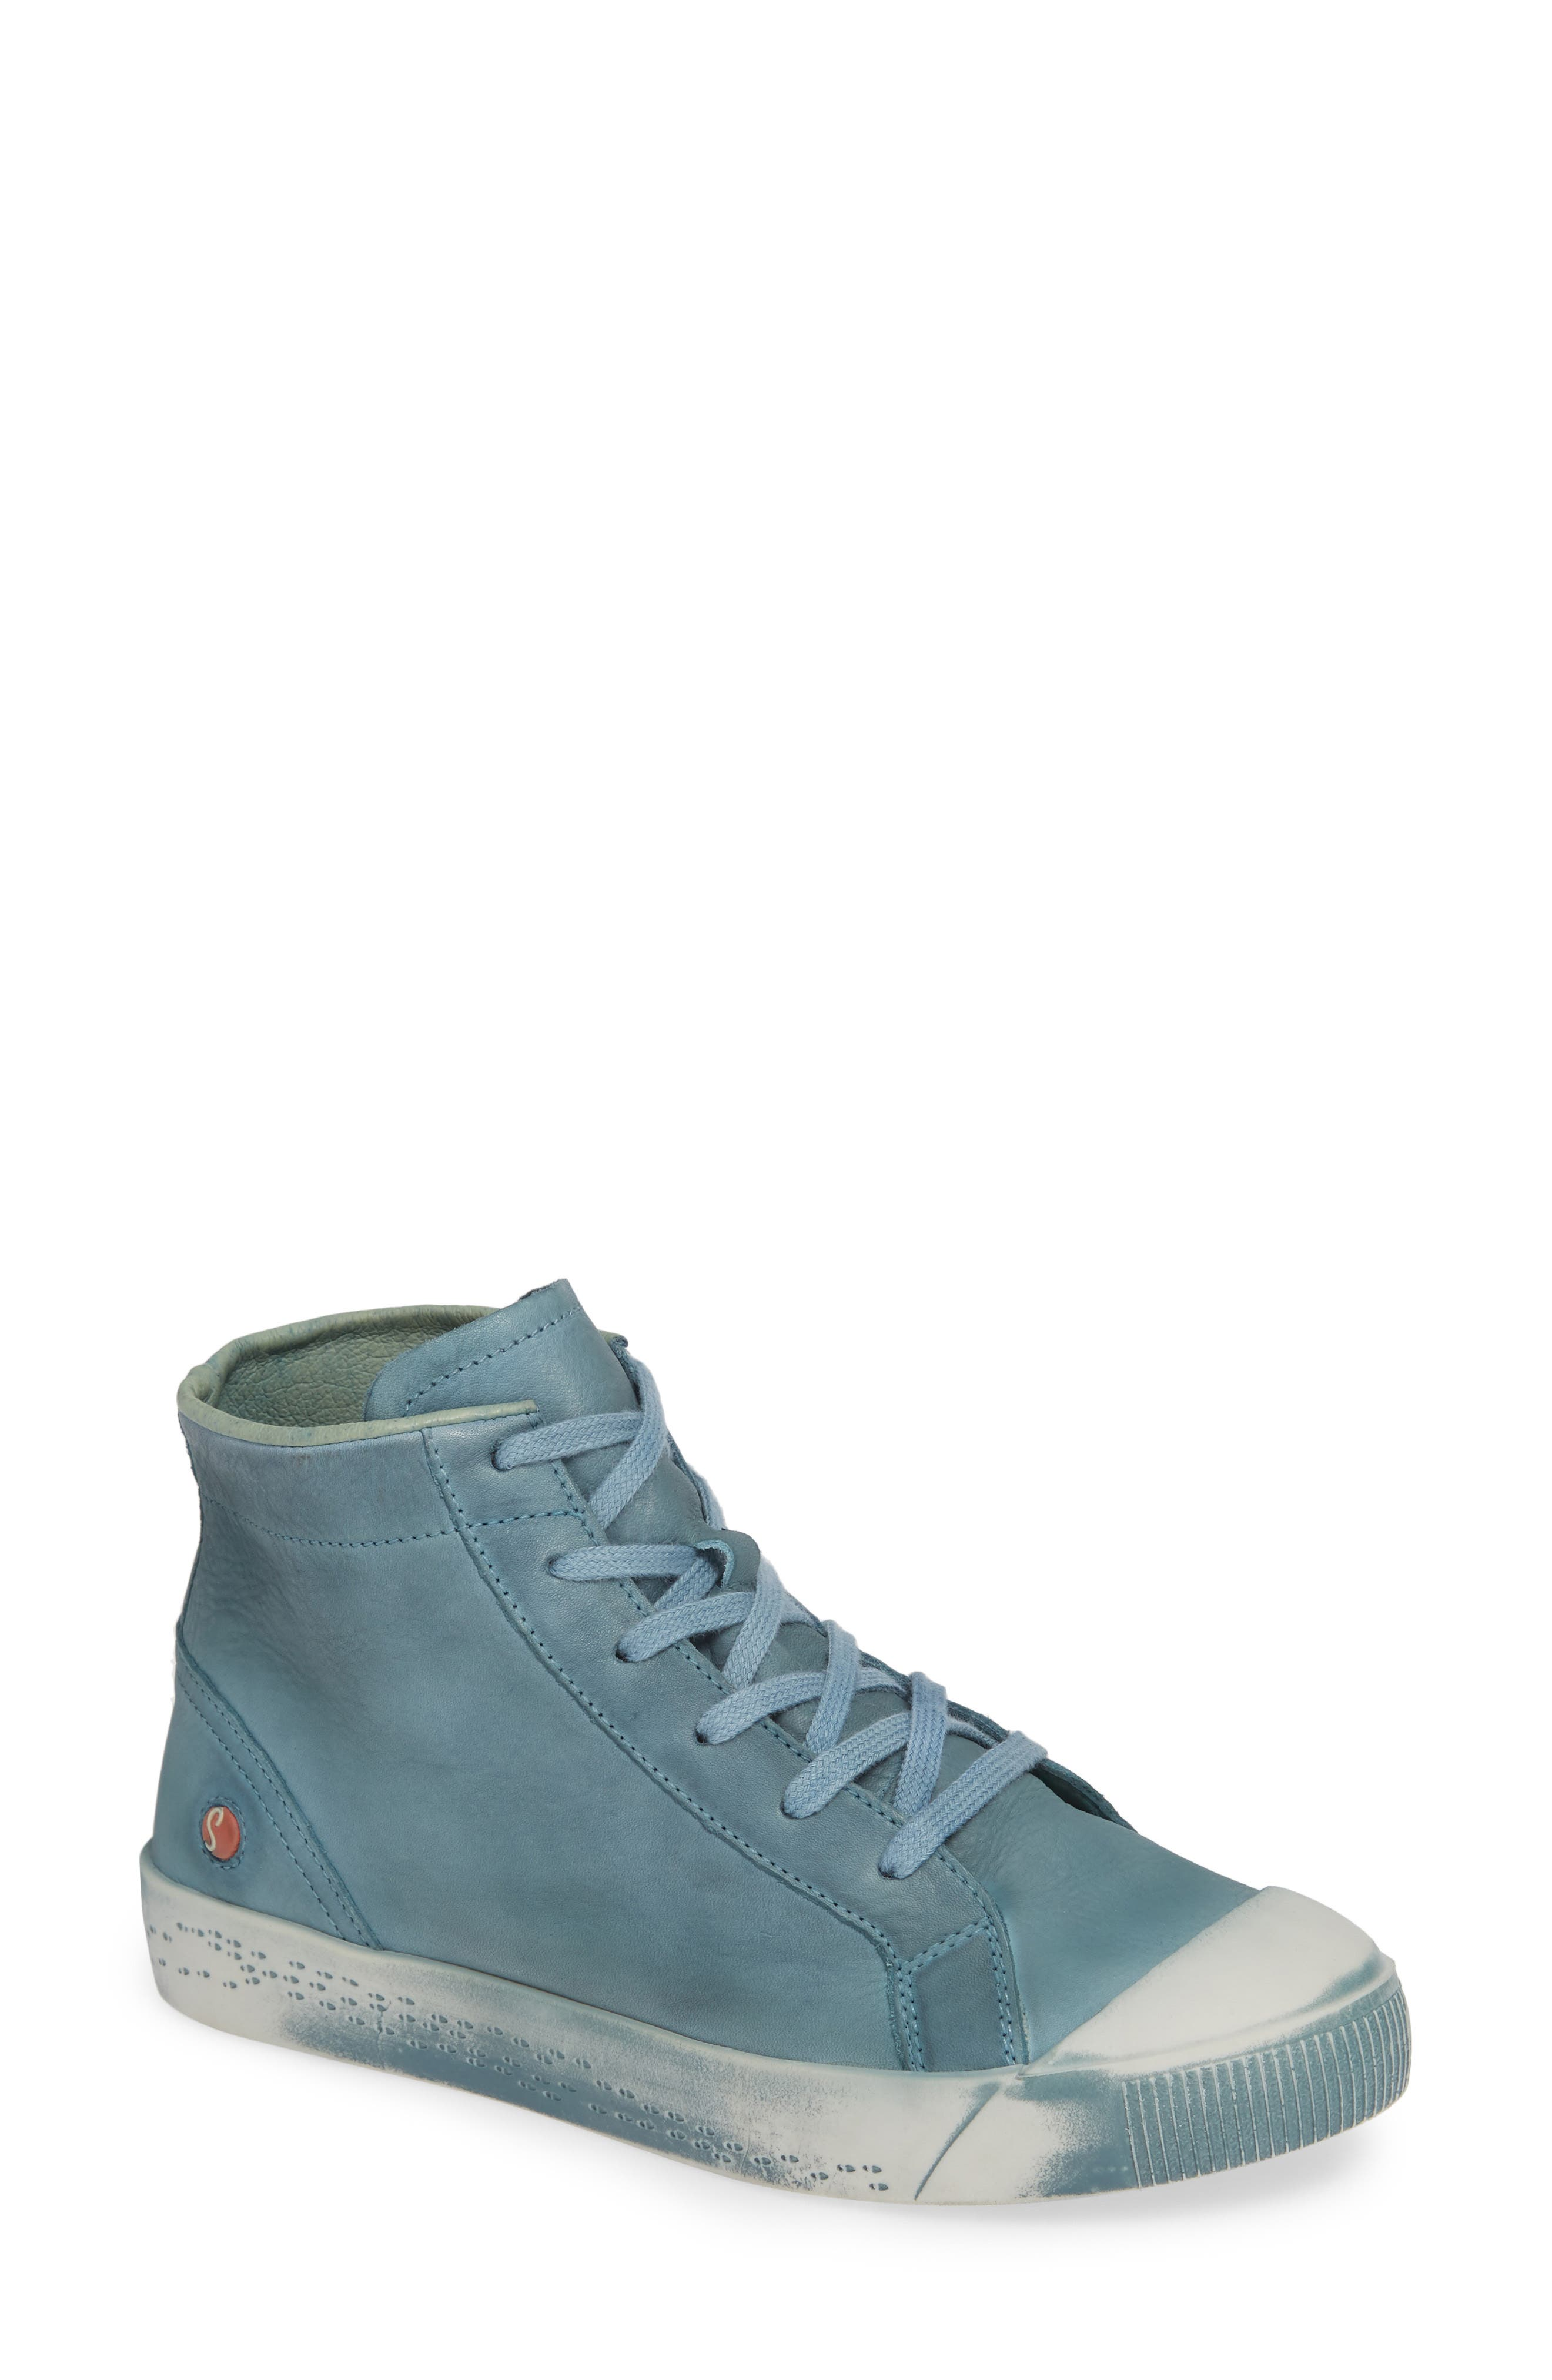 Kip High Top Sneaker,                         Main,                         color, NUDE BLUE WASHED LEATHER